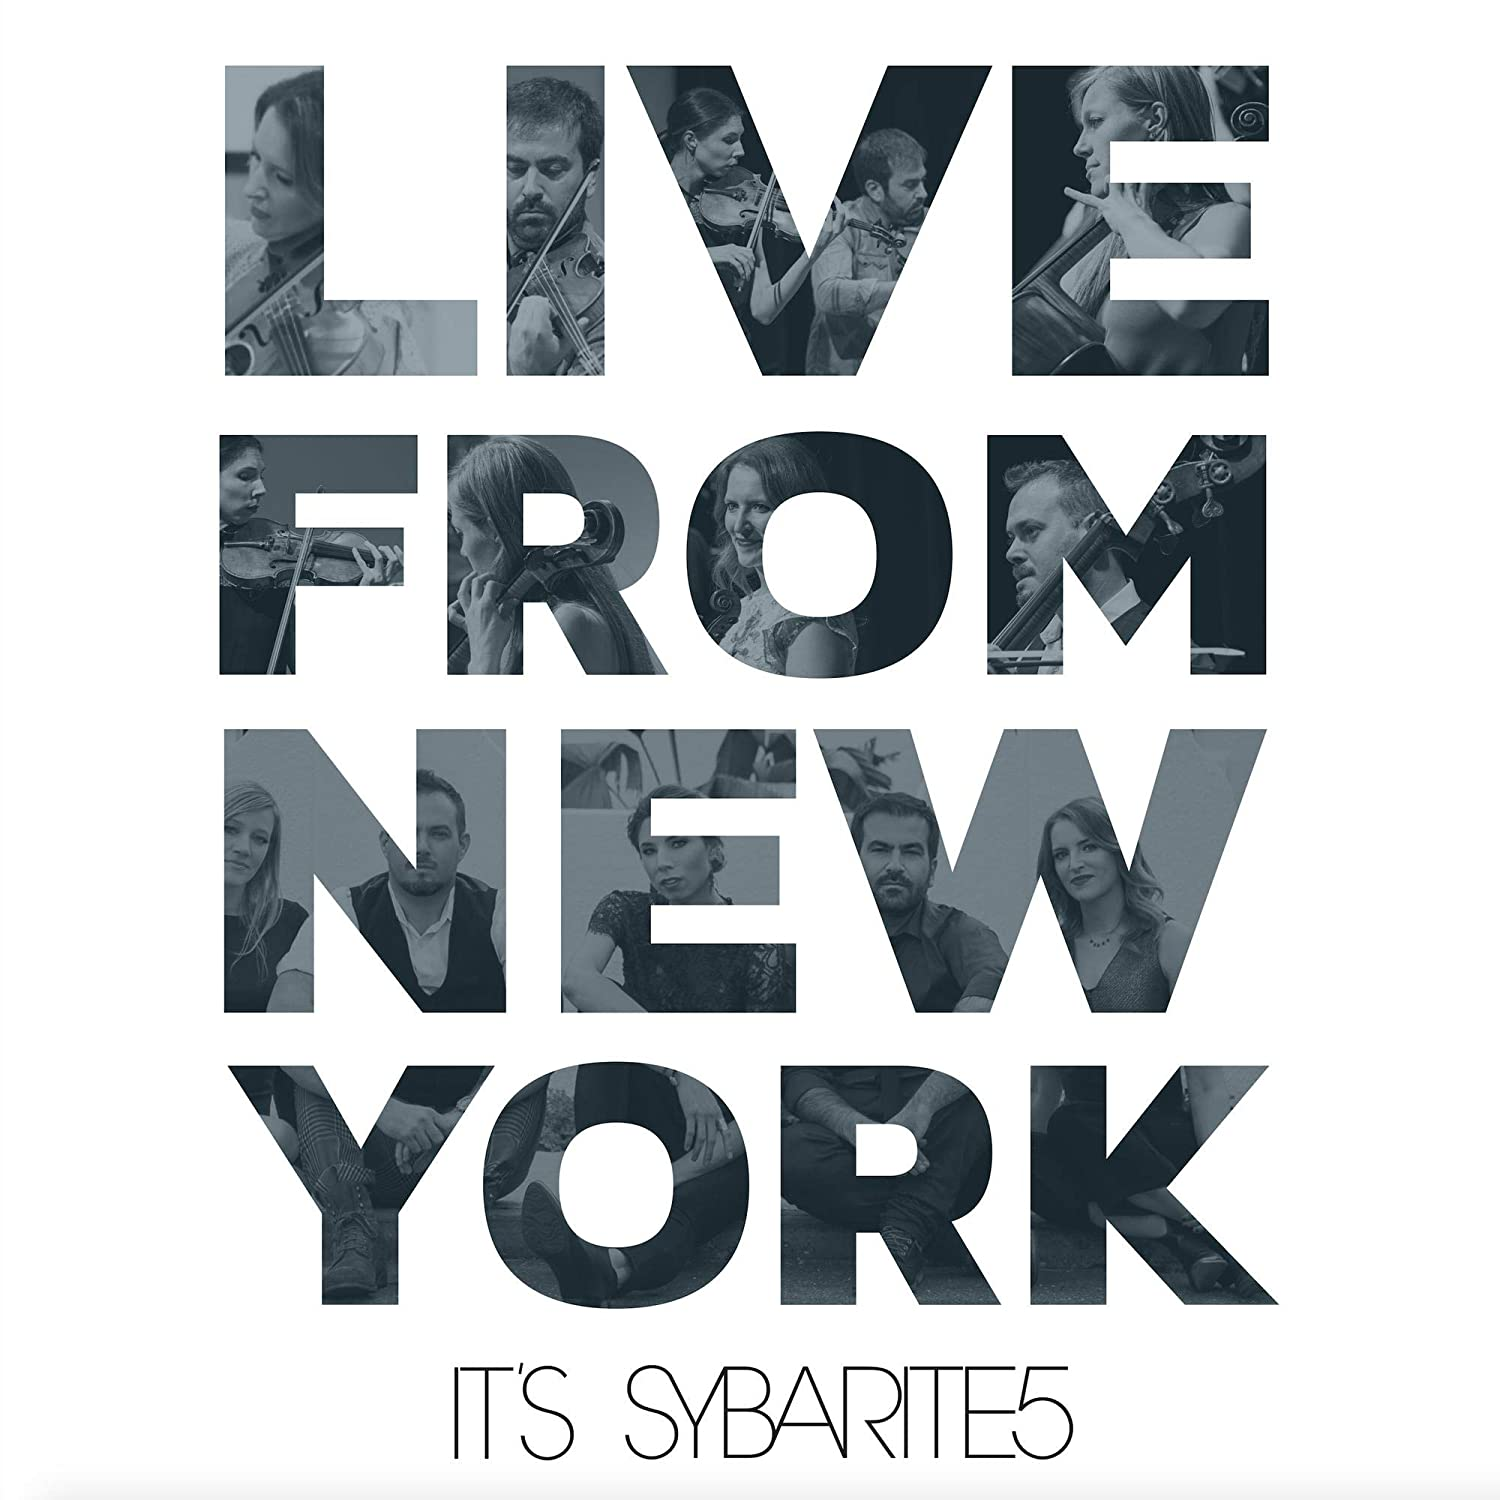 Sybarite5 - Live From New York, It's Sybarite5 [CD] - Urban Vinyl | Records, Headphones, and more.